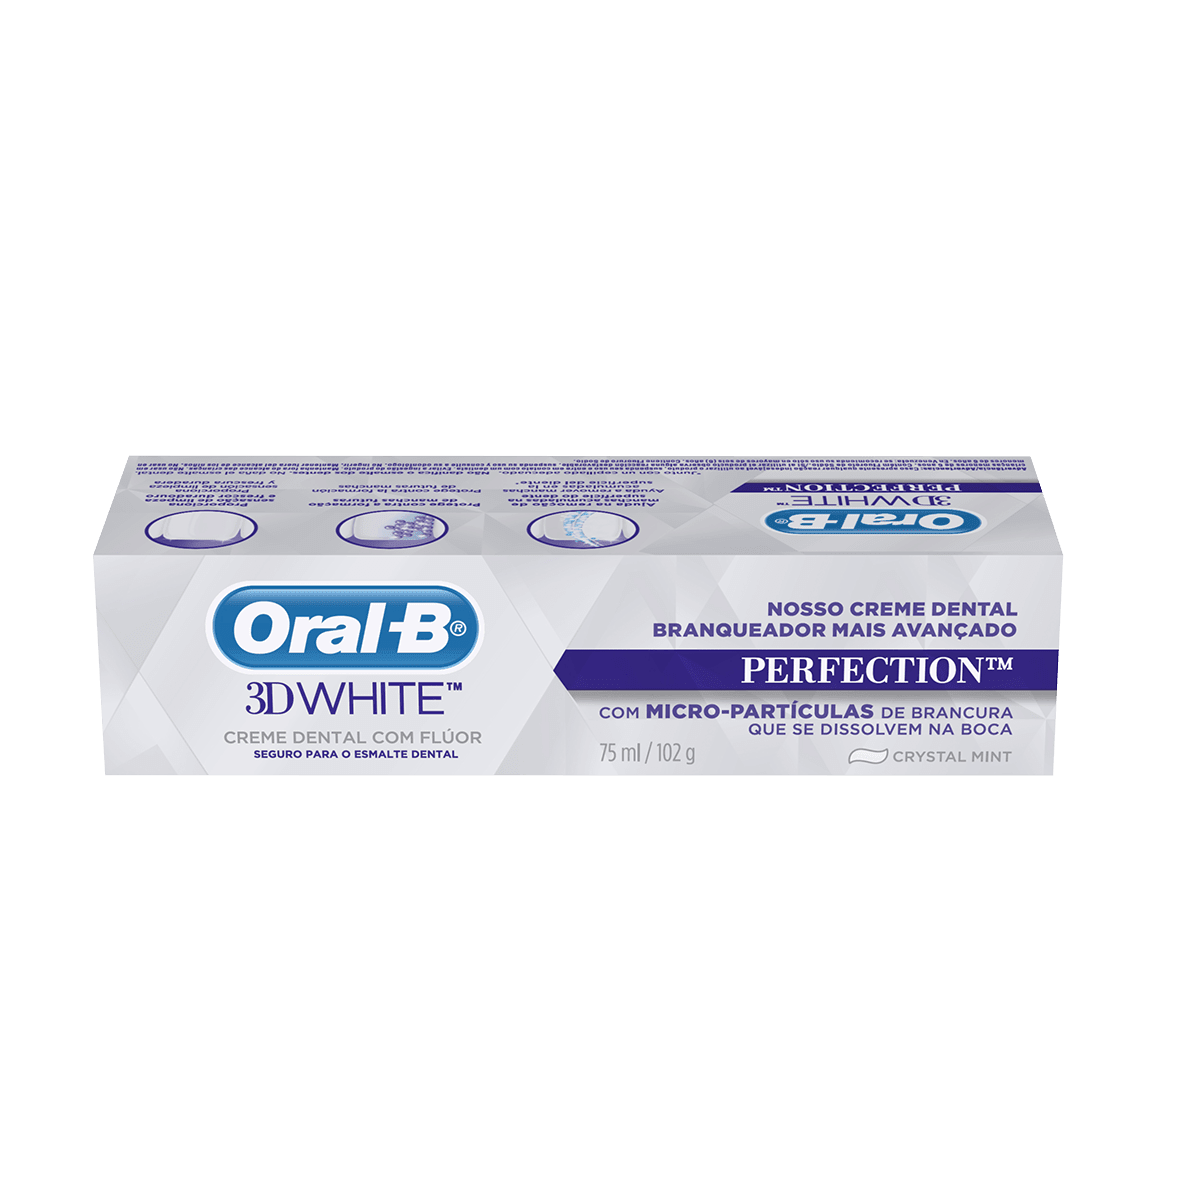 Creme dental Oral-B 3D White Perfection